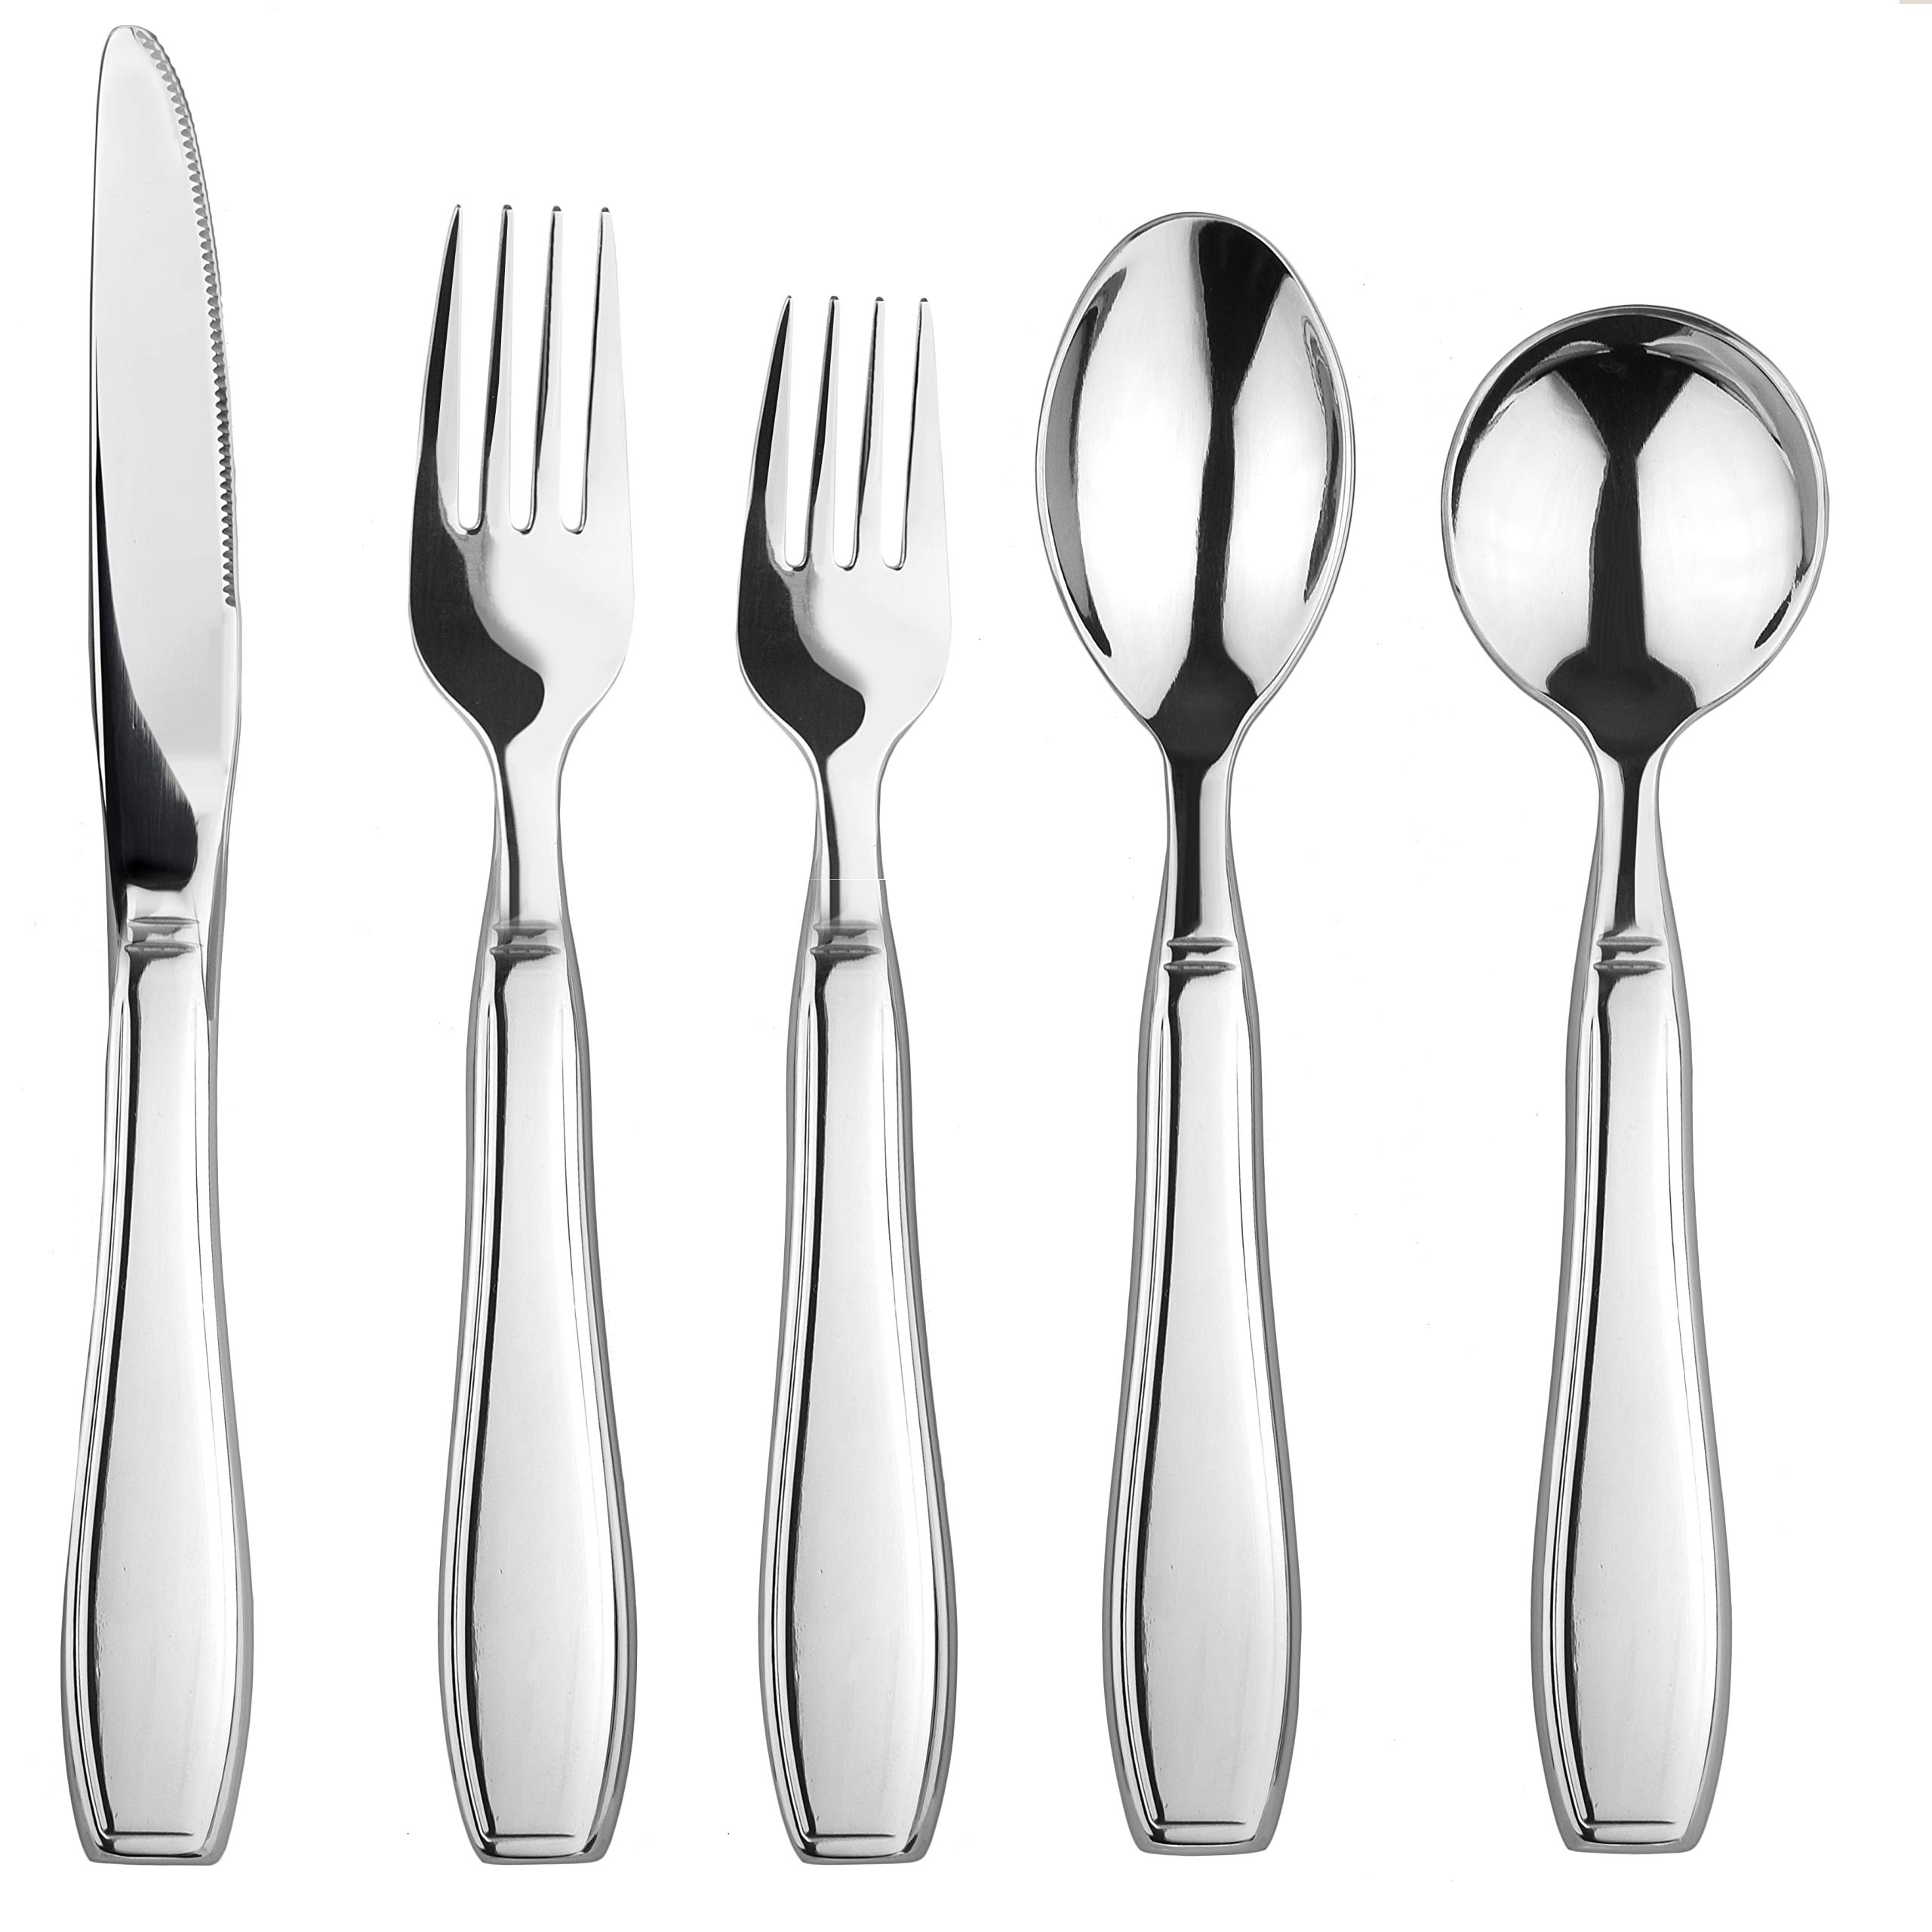 Linelax Weighted Utensils for Tremors and Parkinsons Patients - Heavy Weight Steel Silverware Set of Knife, Fork, Teaspoon and Soup Spoon - Adaptive Eating Flatware Helps Hand Tremor, Parkinson, Arthr by LINELAX